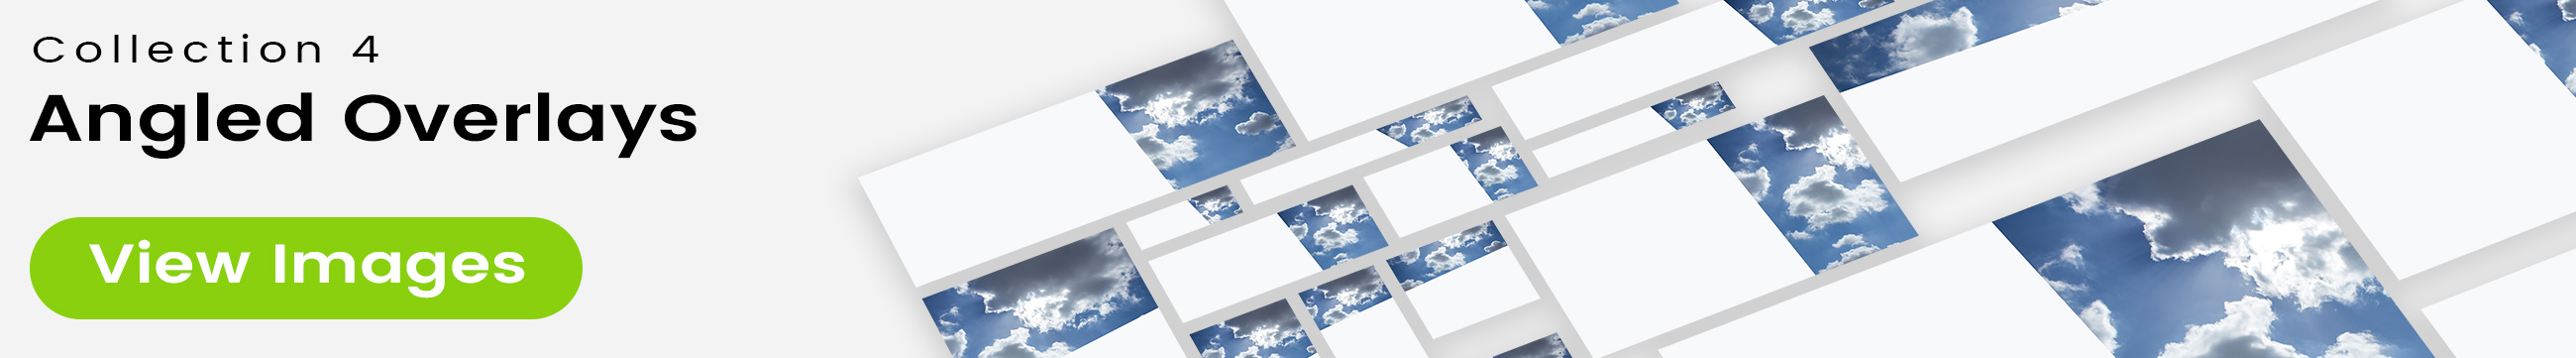 See 25 bonus images included with clouds stock image 9500. Collection 4 of 4 features an angled overlay design customized with a color that complements each photo.